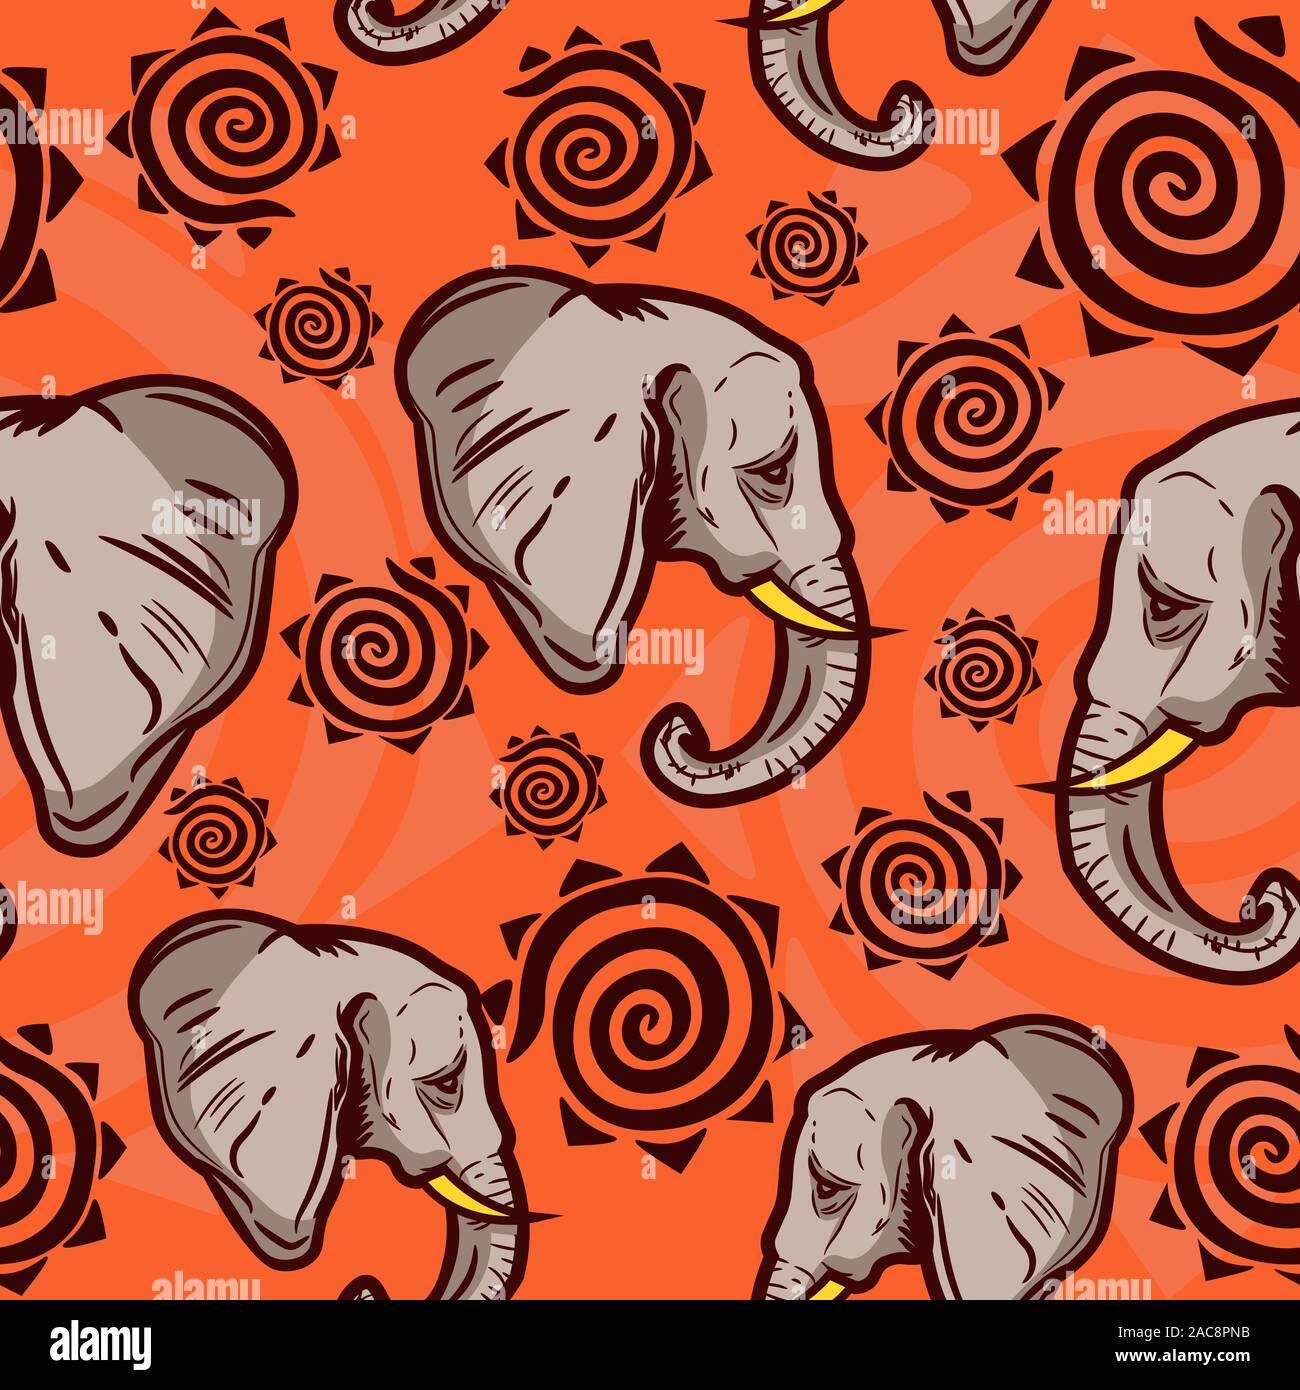 Elephant Motif Stock Photos Elephant Motif Stock Images Alamy